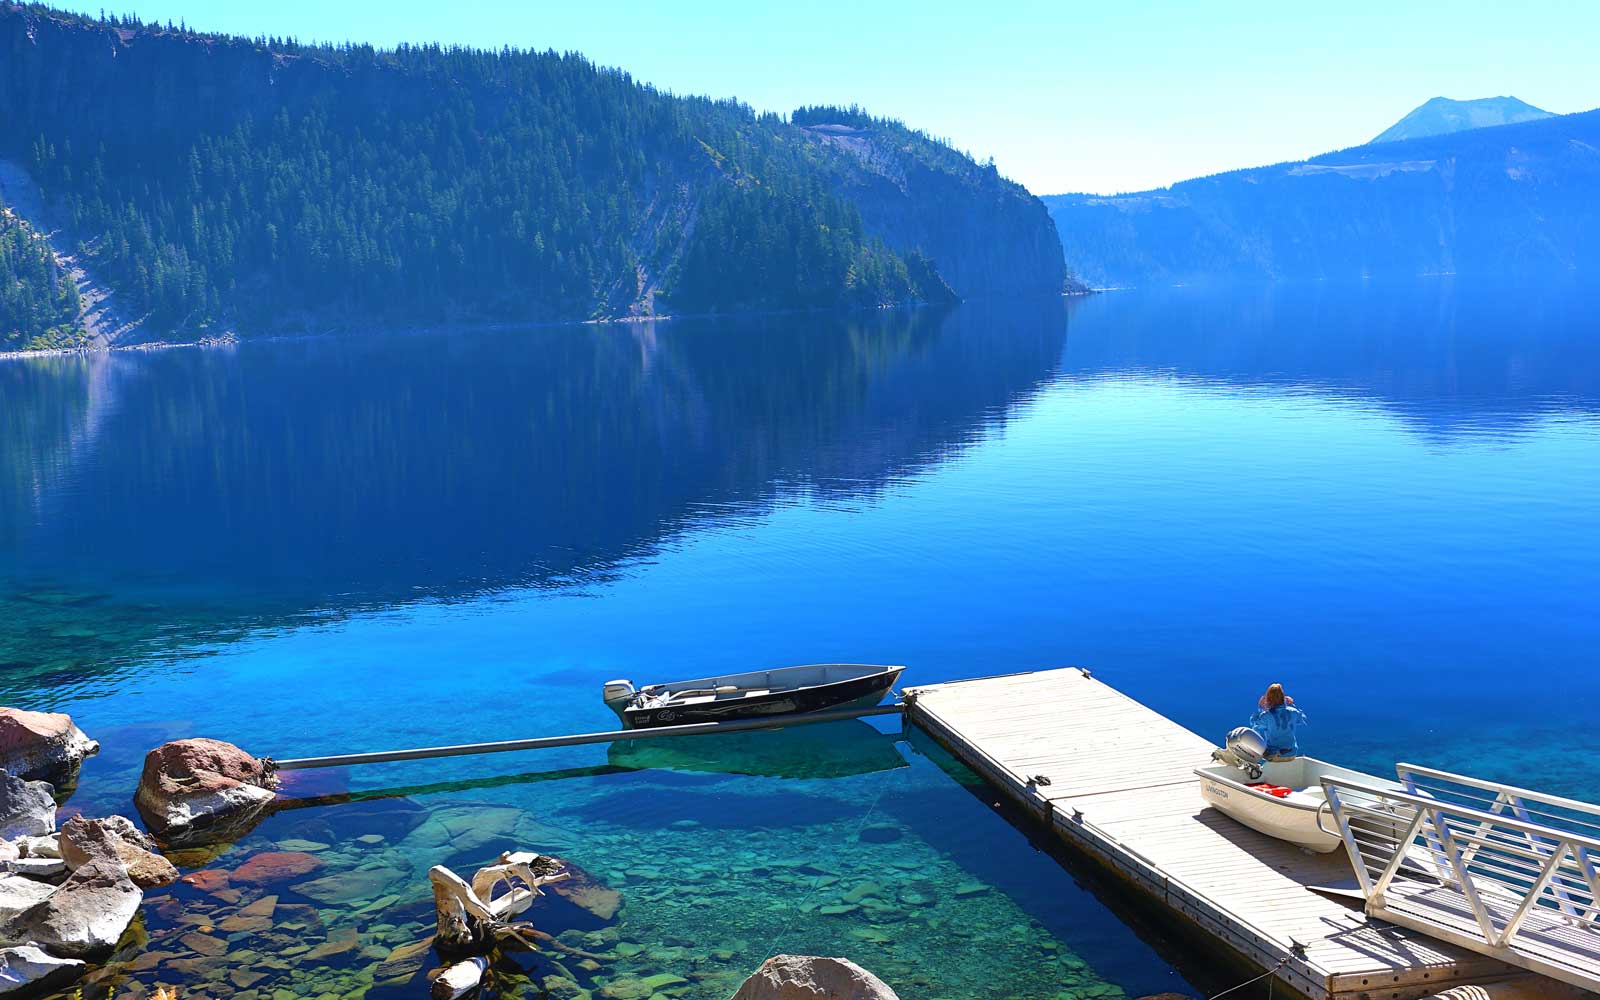 Visit Crater Lake National Park in the summer to take in the park's unique landscape and activities like hiking, boating, bicycling, and trolley tours.